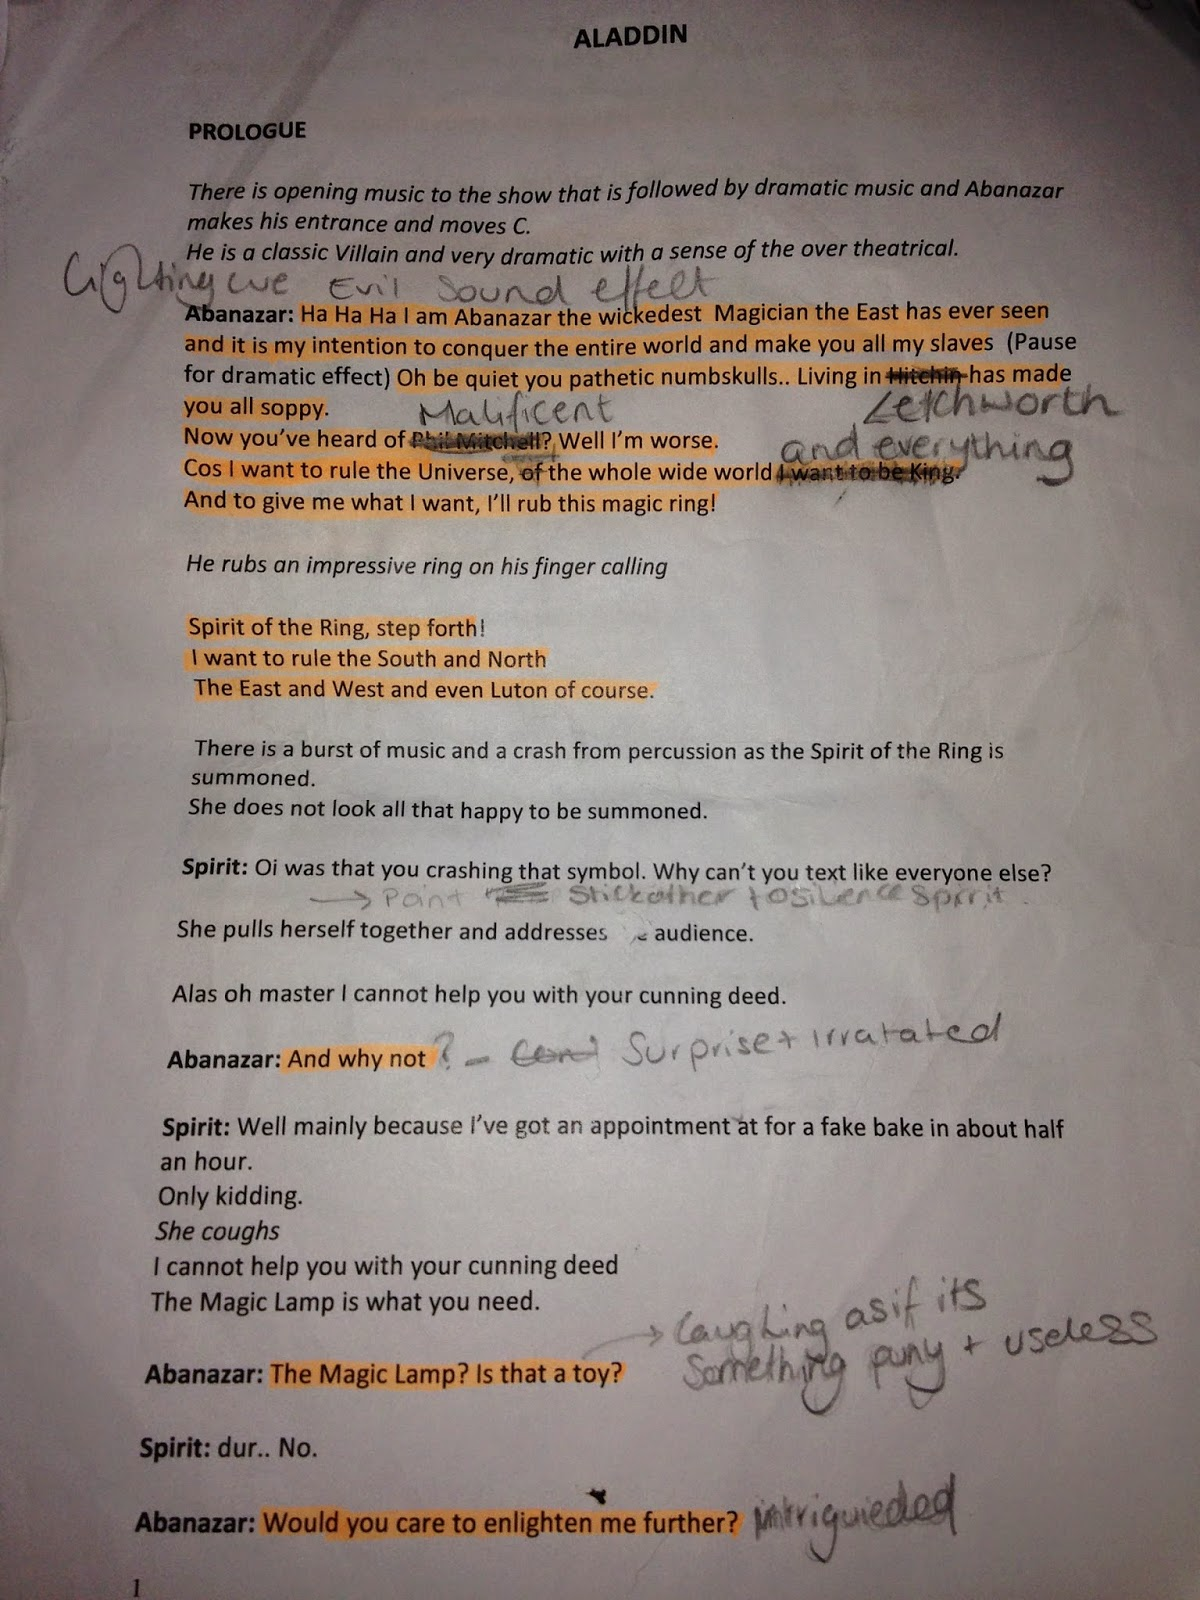 here is my annotated script of act one